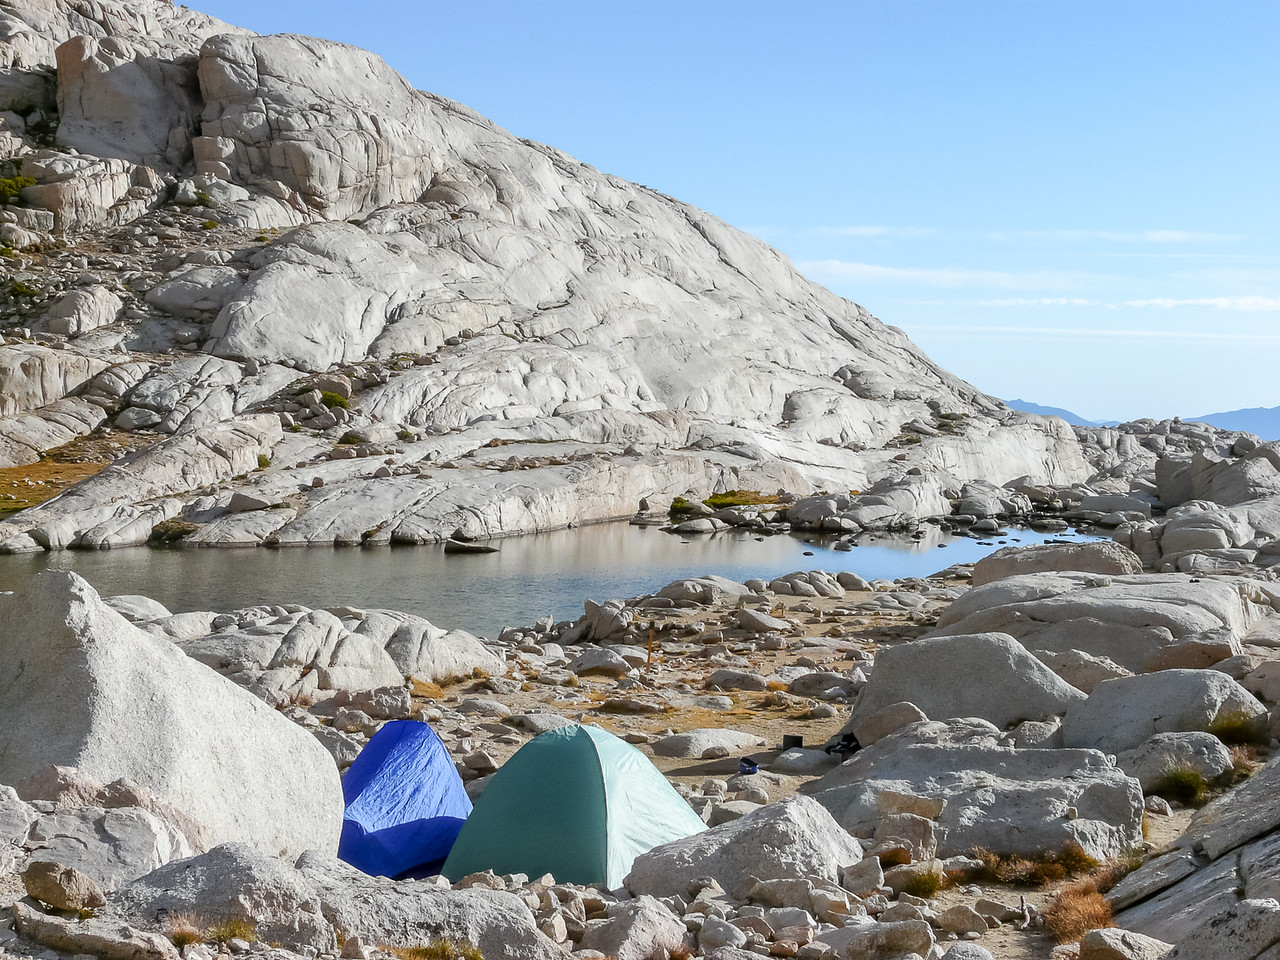 Day 9 - Saturday, September 12.  Some views of Trail Camp's tent city on the way out.